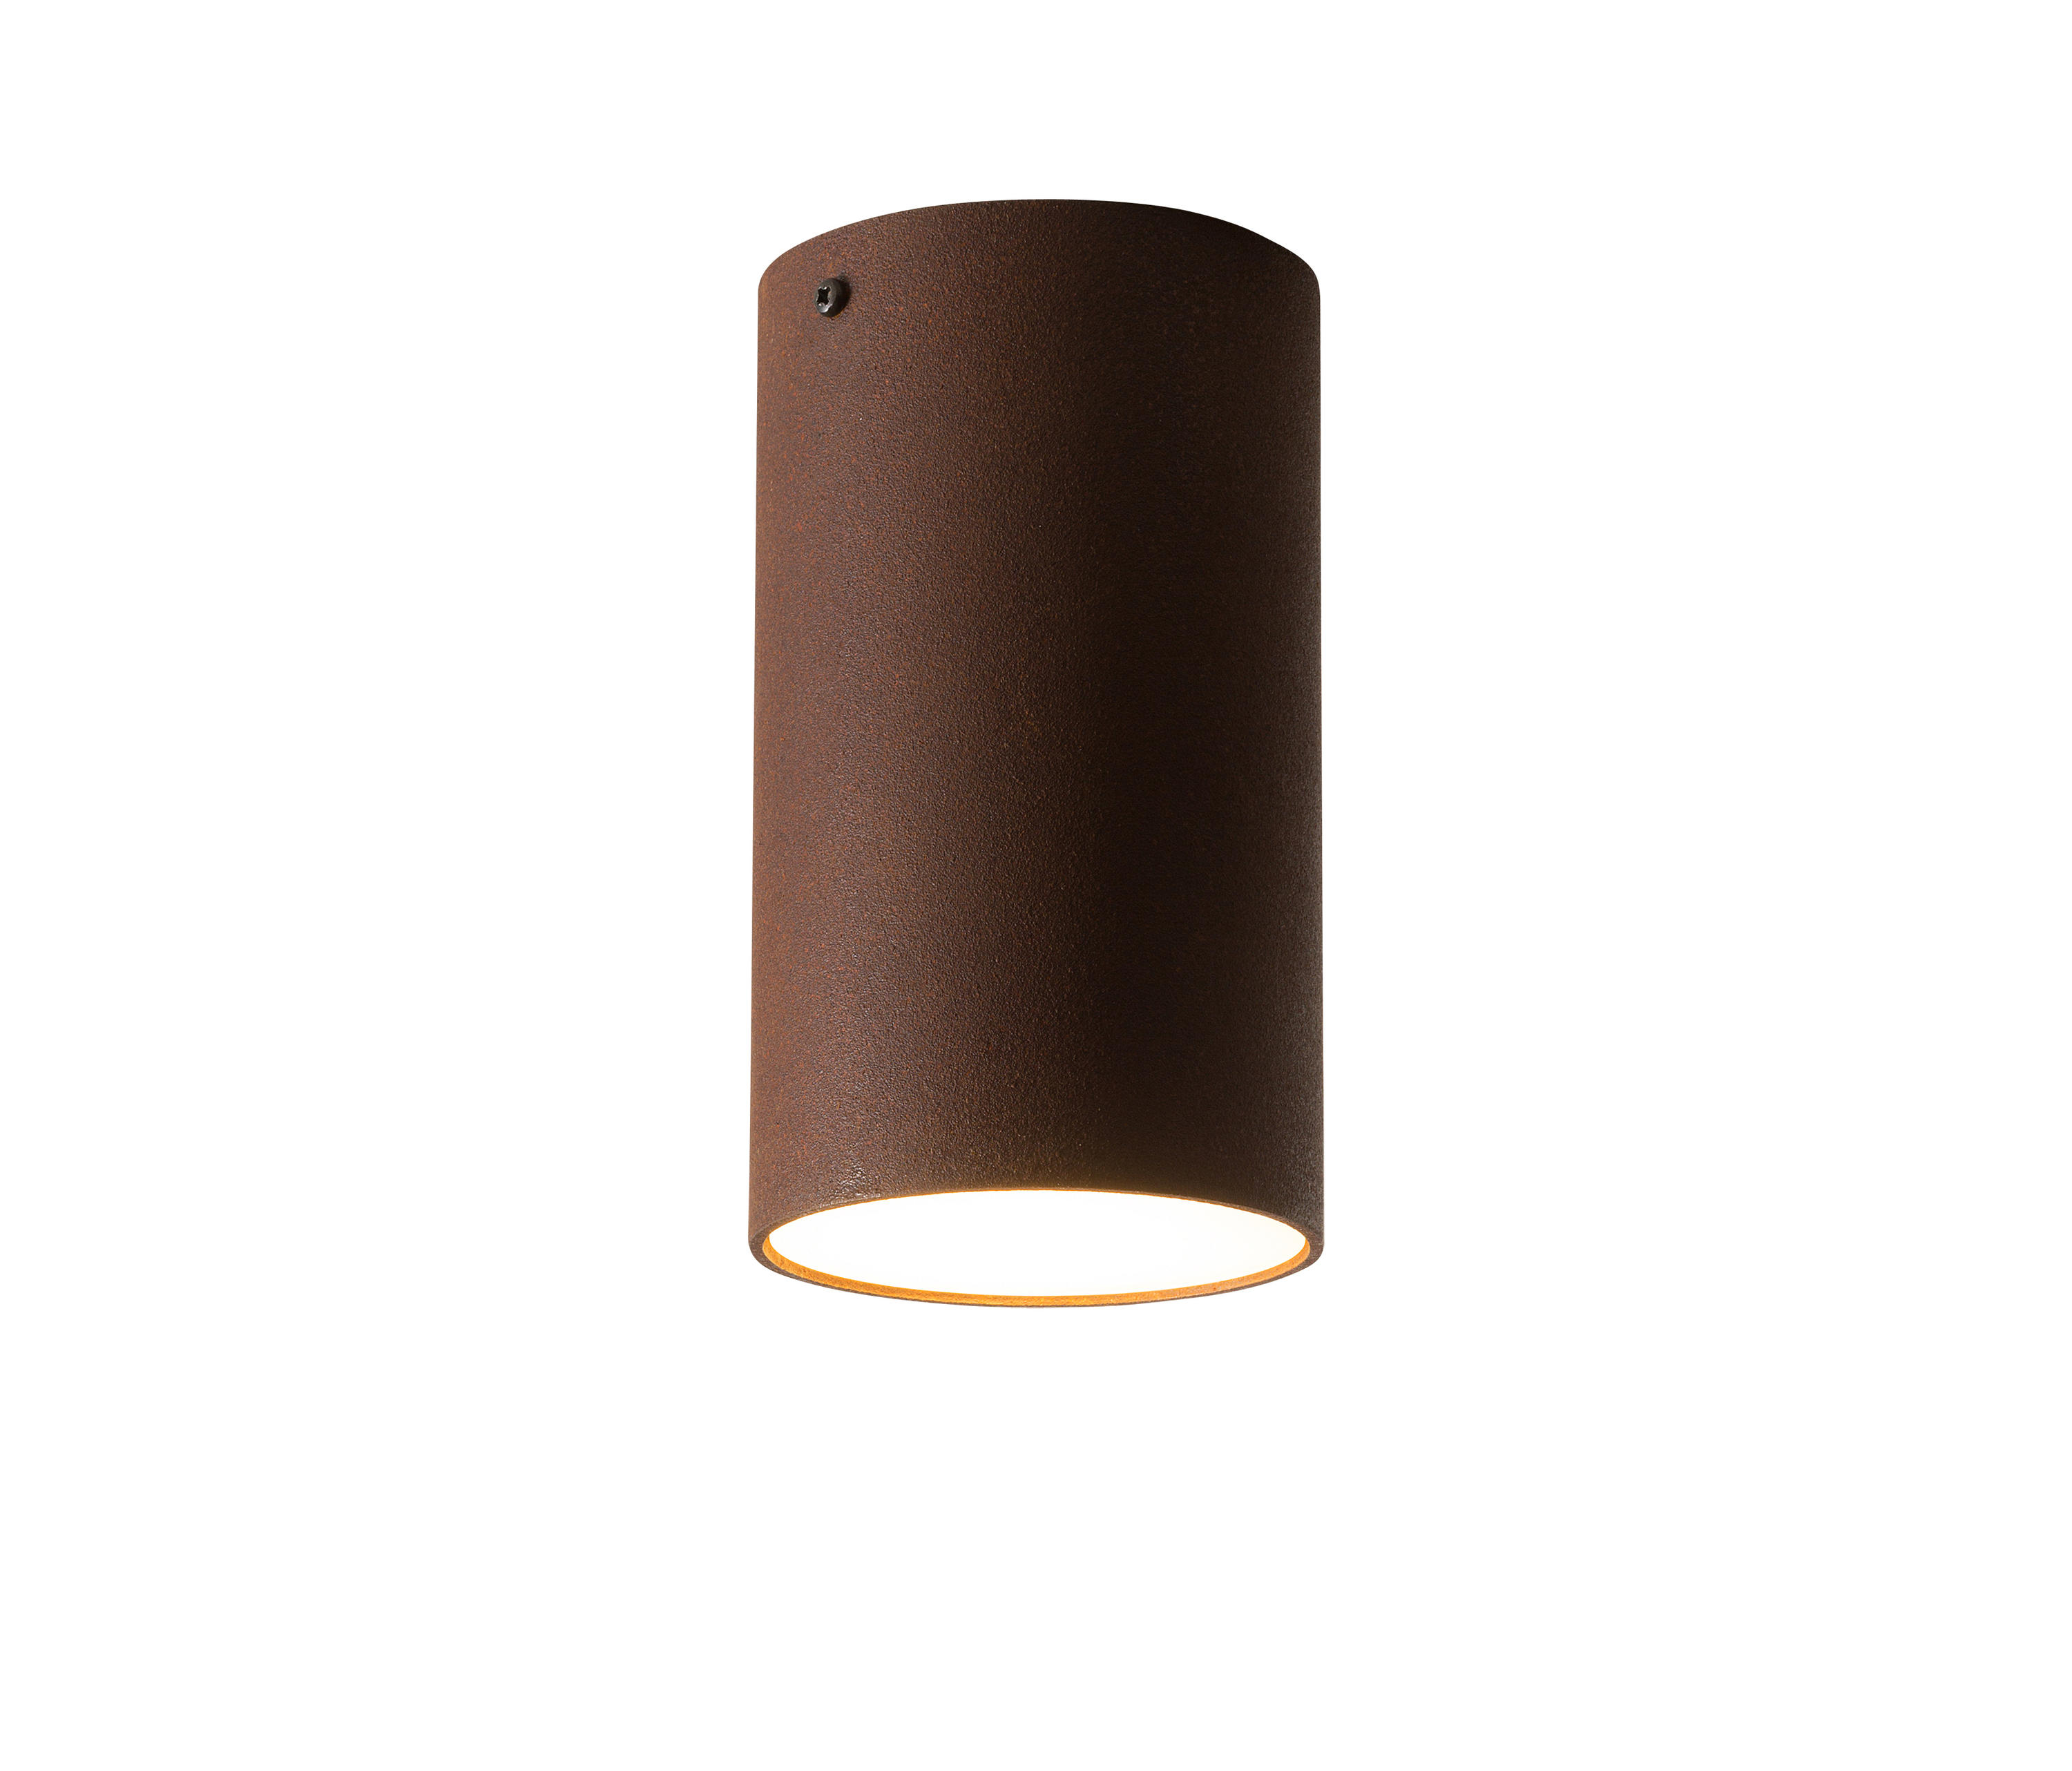 Ceiling lights in ceramic high quality designer ceiling lights roest ceiling 20 general lighting karven aloadofball Image collections